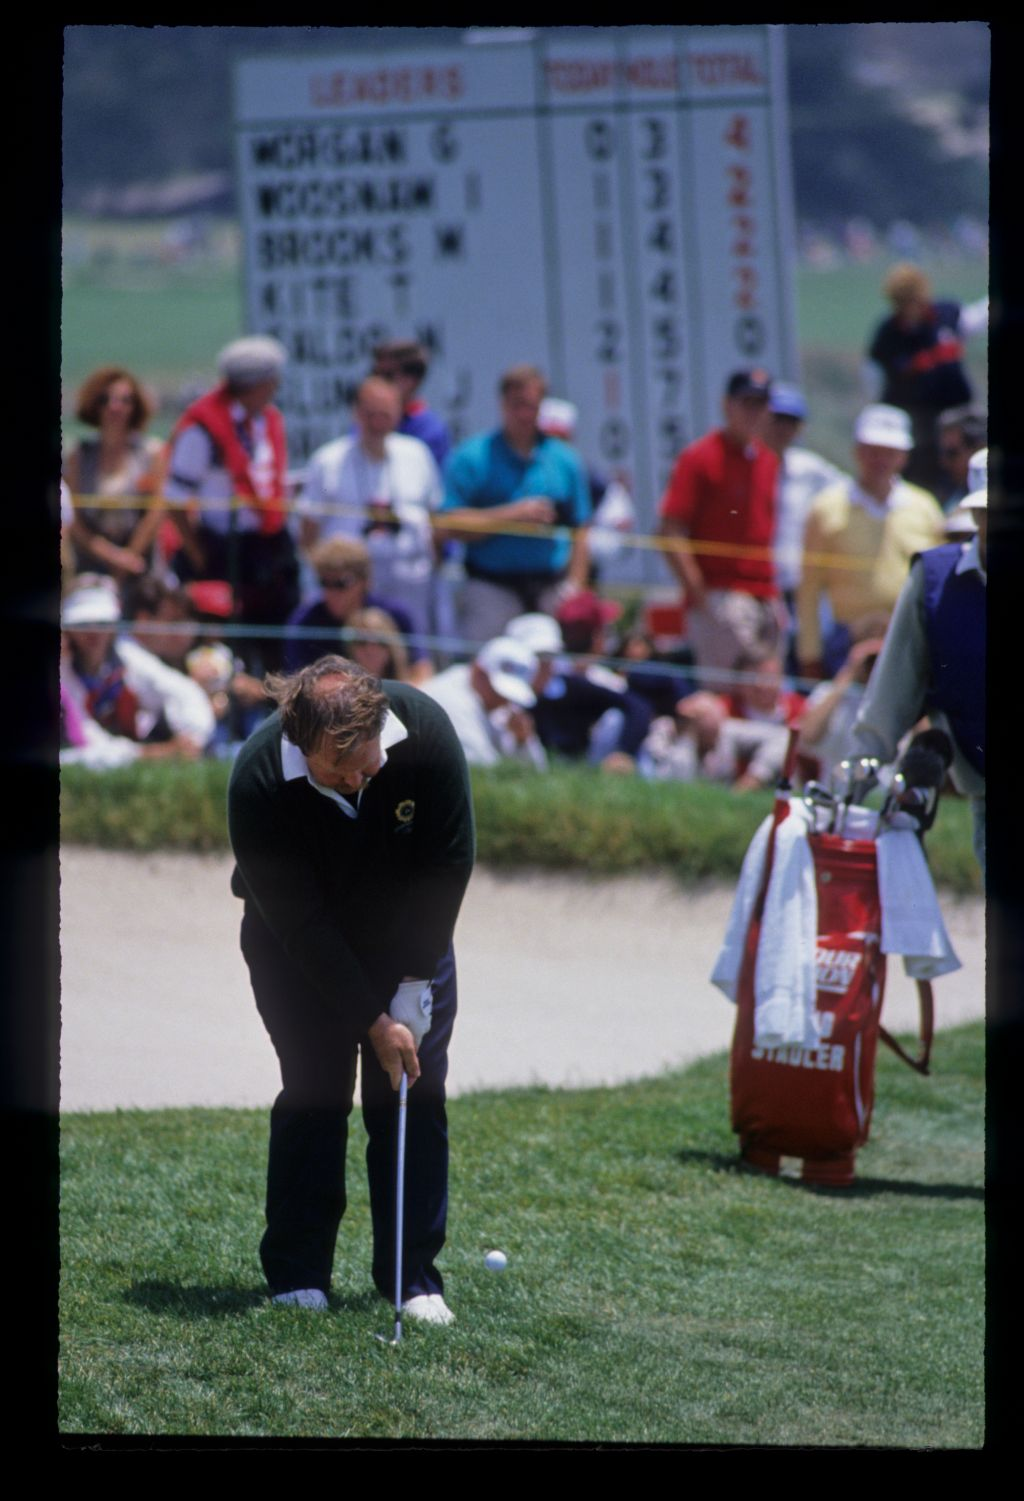 Craig Stadler chipping from the greenside rough during the 1992 US Open